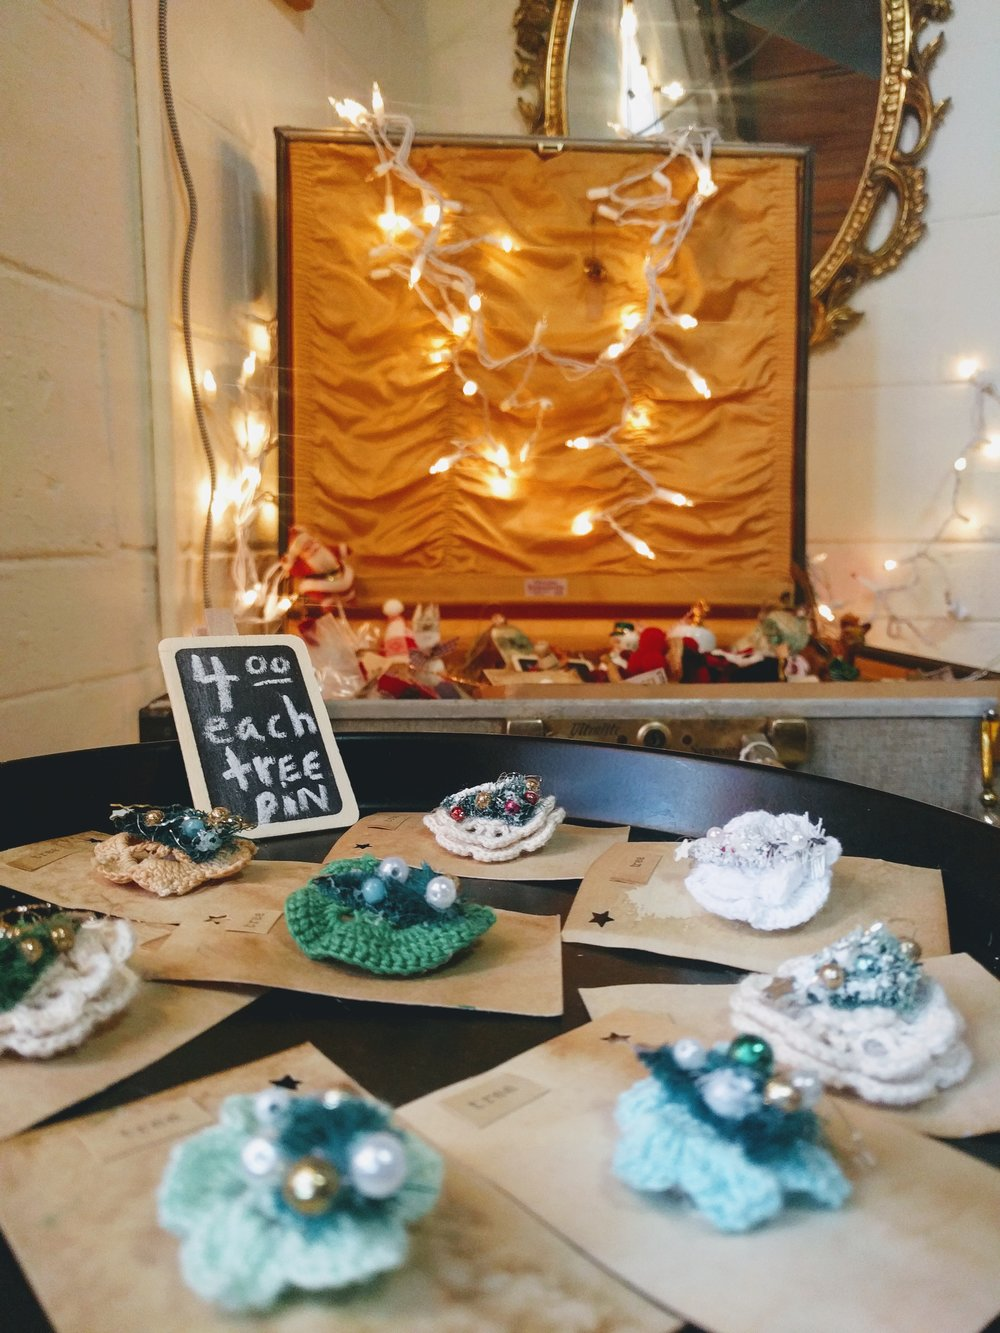 A collection of carefully arranged, minute details amount to a stylish and playful space that invites you to browse, taste, test, and buy. The East/West Holiday Pop Up Shop by Emma Castleberry